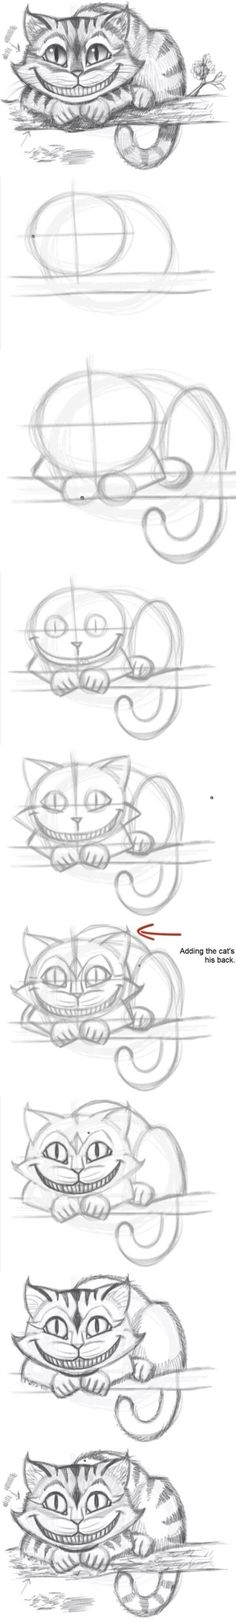 Meine Disney Zeichnung - Cheshire Cat from Alice In Wonderland. How to draw the Cheshire Cat - Logischesmädchen 44 - Pin Drawing Techniques, Drawing Tips, Drawing Sketches, Cool Drawings, Drawing Ideas, Sketching, Drawing Stuff, Sketch Ideas, Easy Sketches